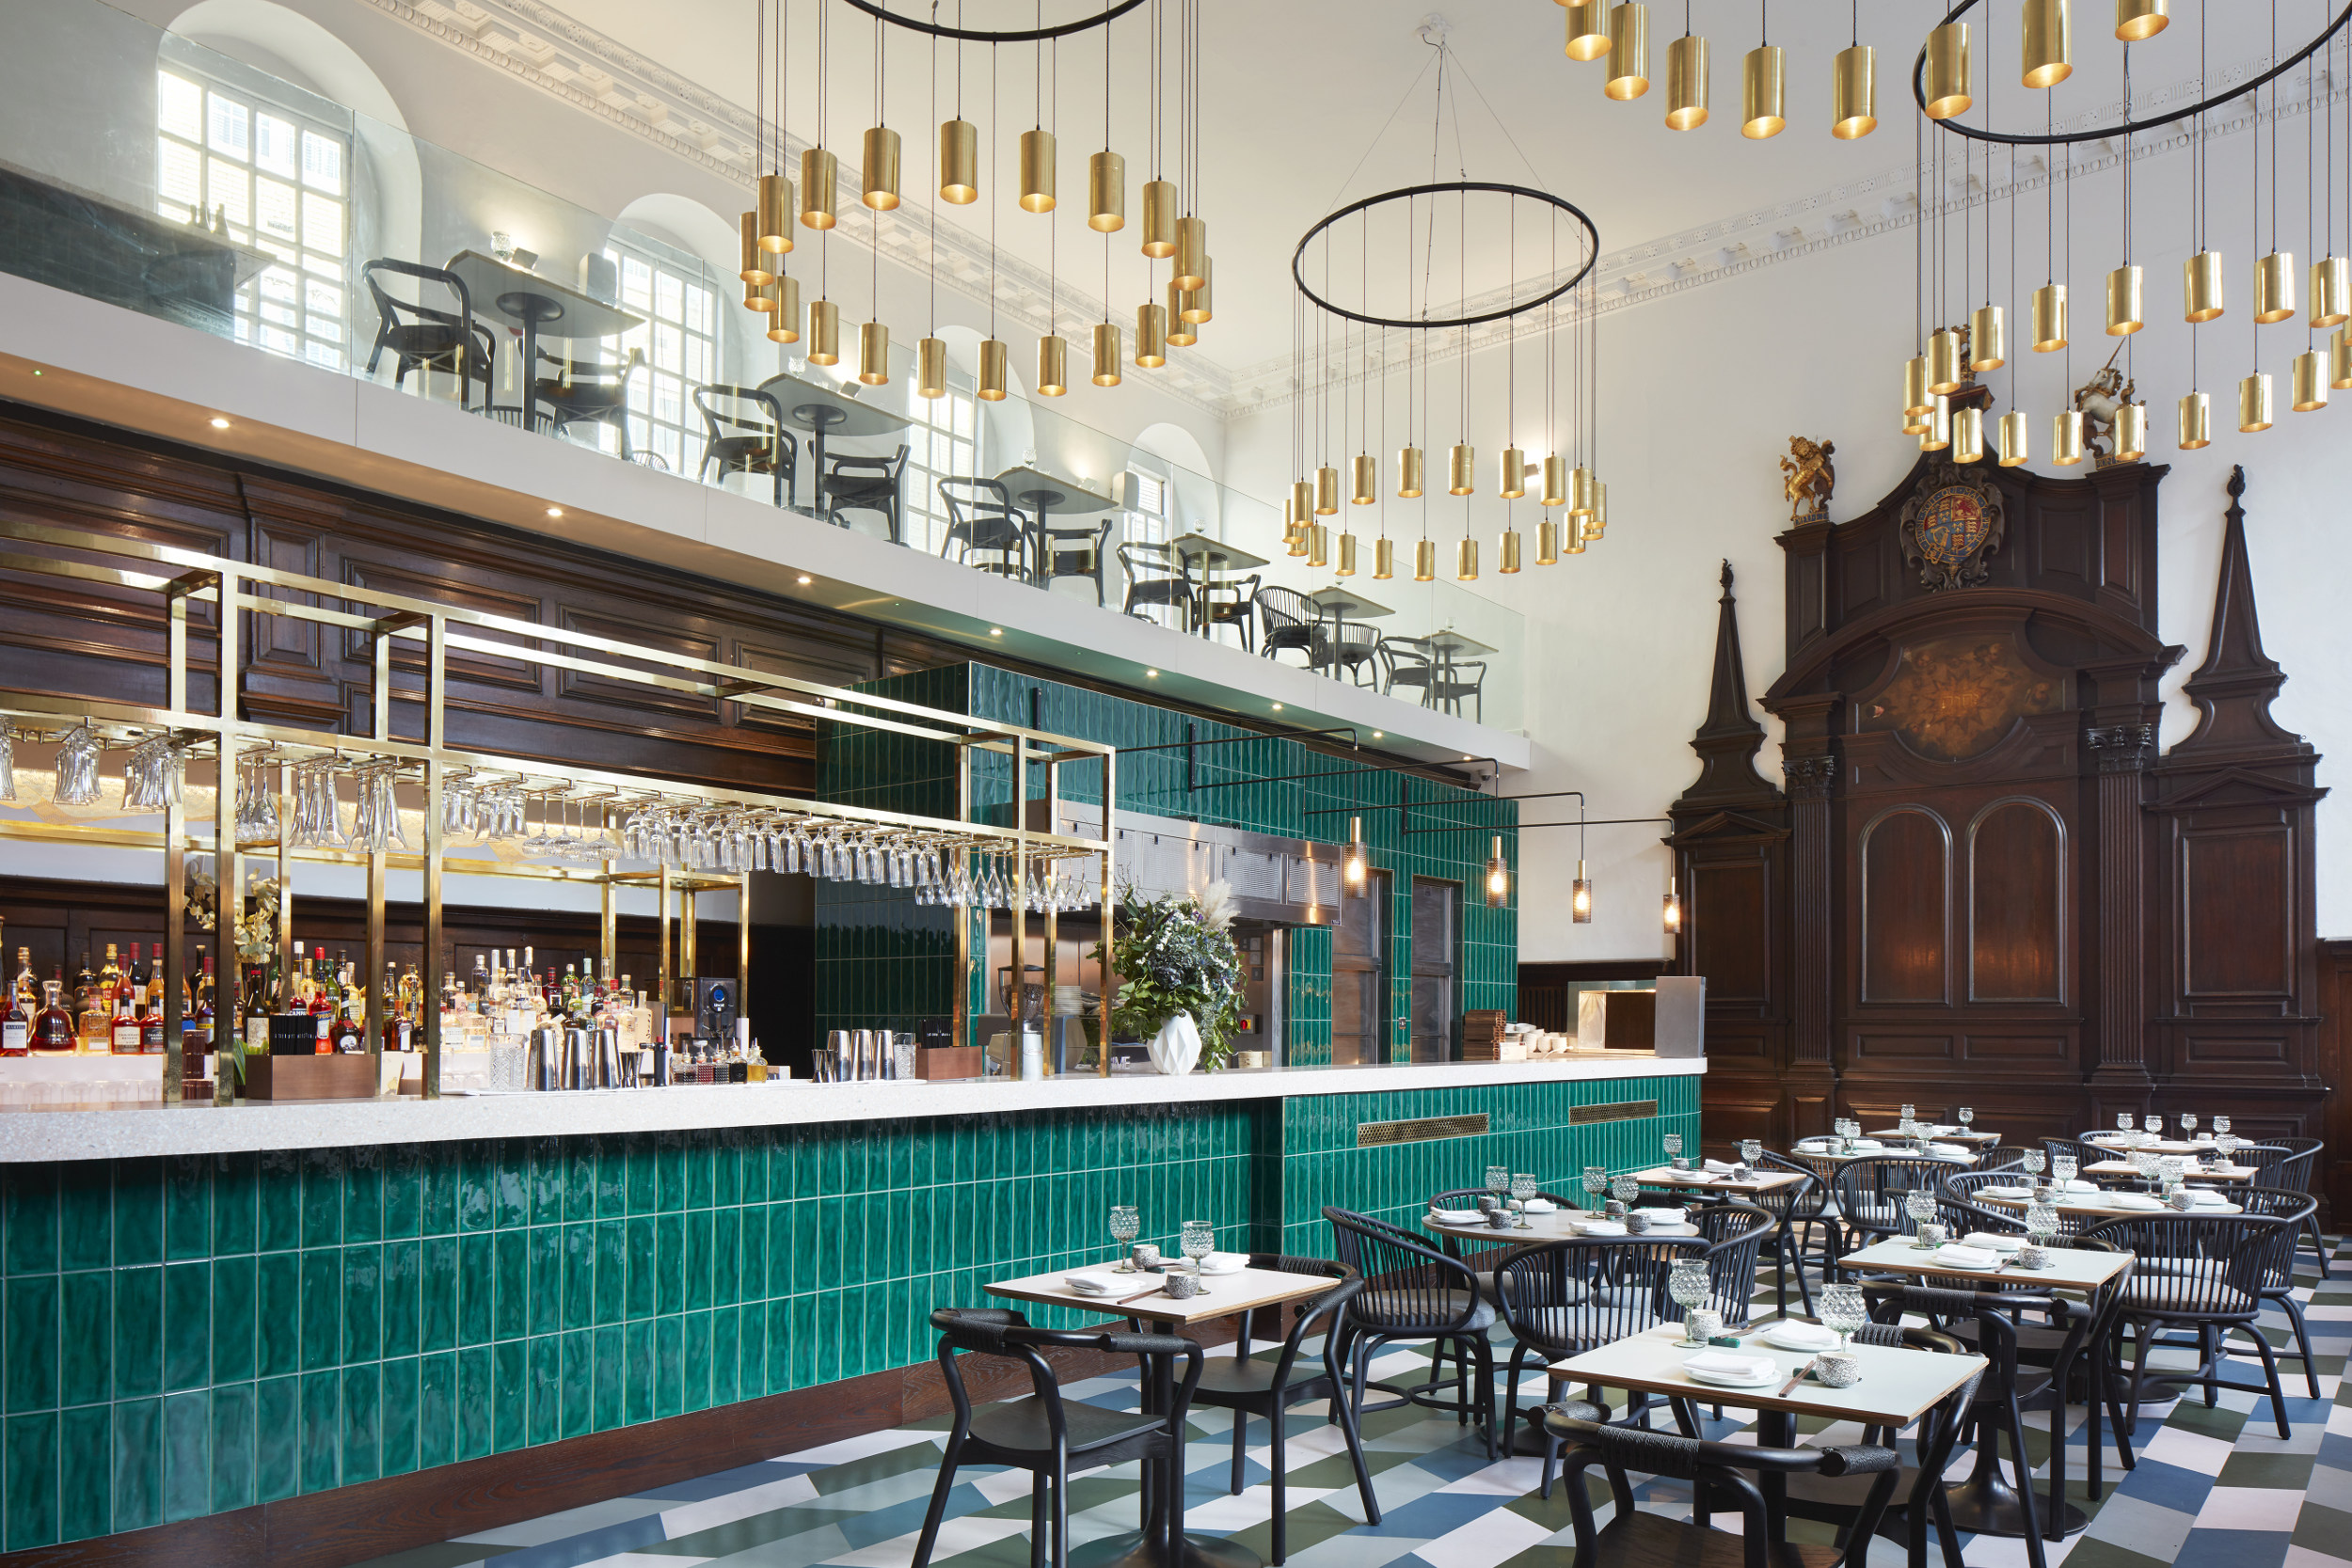 Duddell's London is located inside a Grade II-listed building in Tower Bridge.